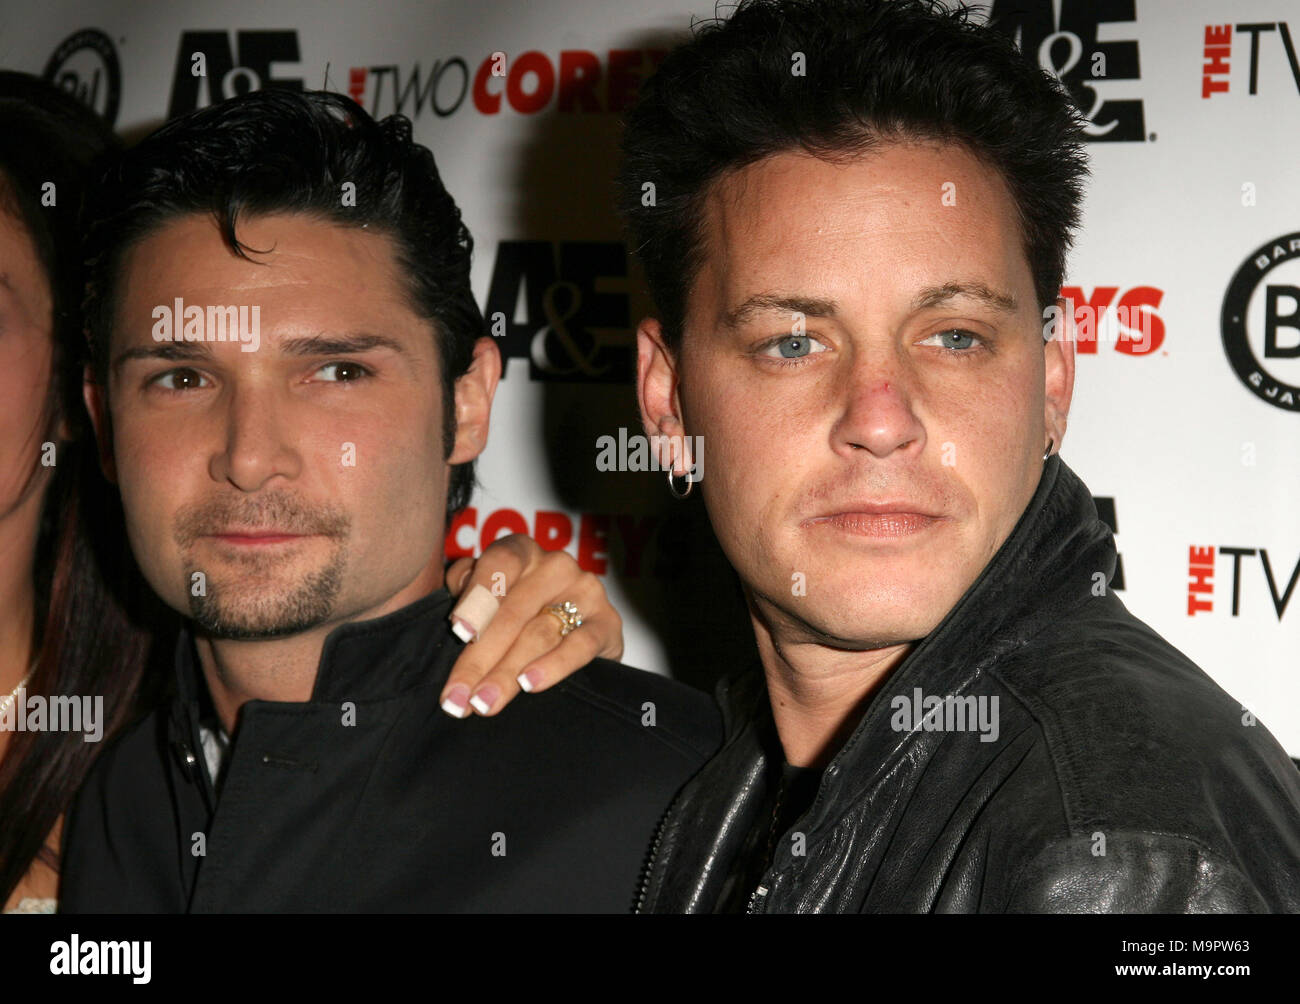 ***FILE PHOTO*** COREY FELDMAN STABBED WHILE IN CAR WITH SECURITY*** Corey Feldman and Corey Haim pictured at 'The Two Coreys' Premiere Party in Hollywood, California, July 27, 2007. © RTRD//MediaPunch. - Stock Image